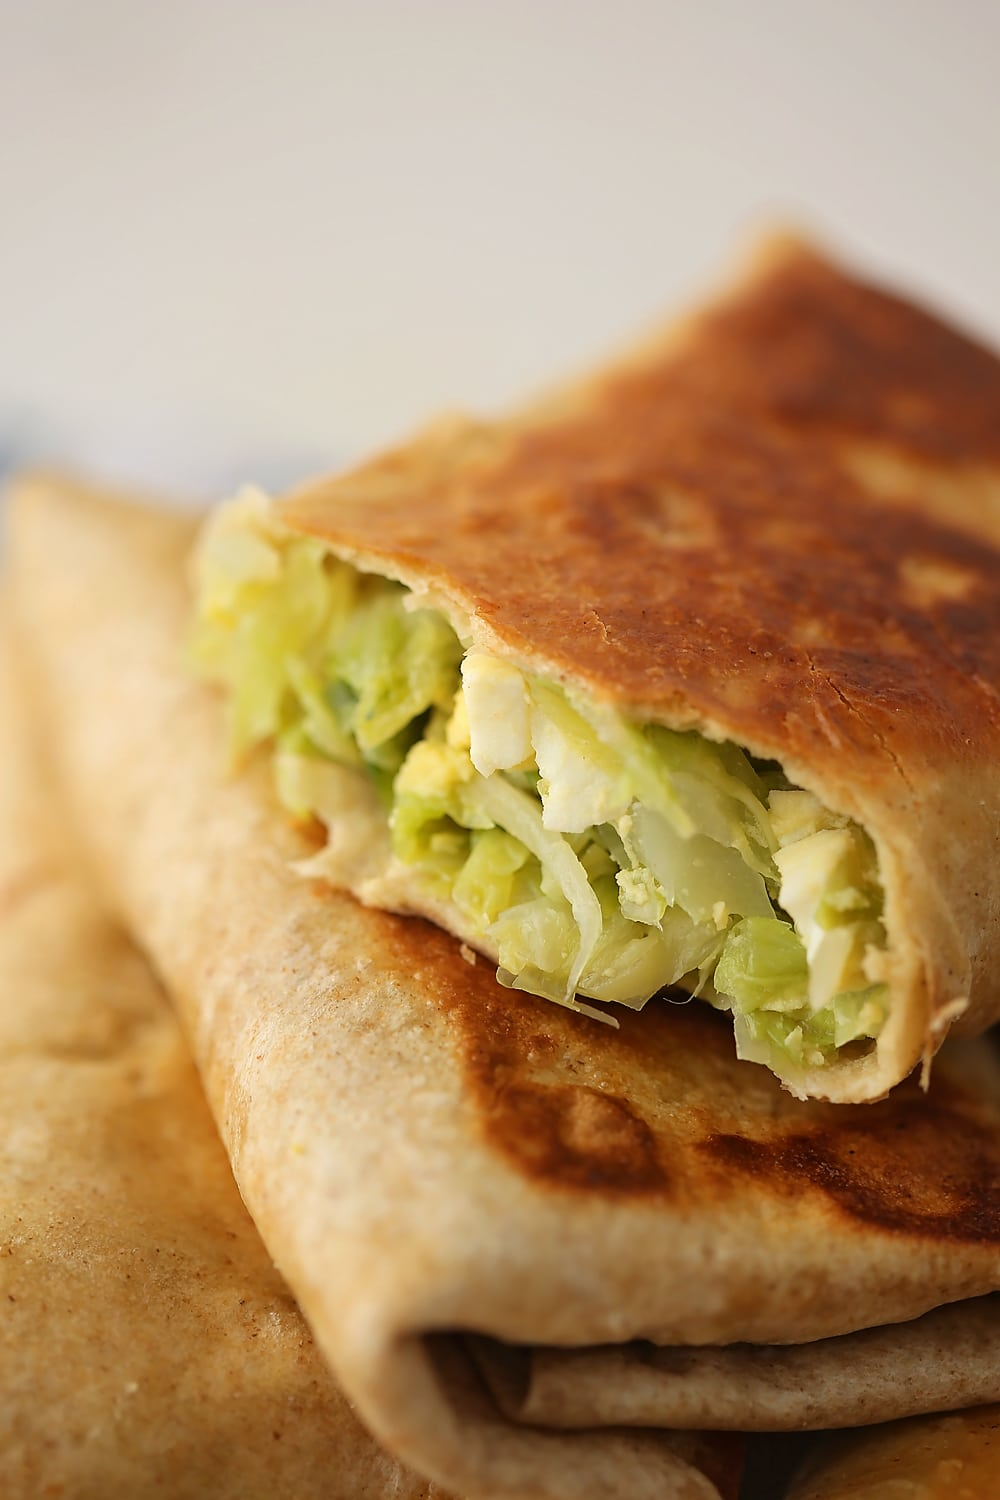 close up shot of tortilla with cabbage stuffing inside